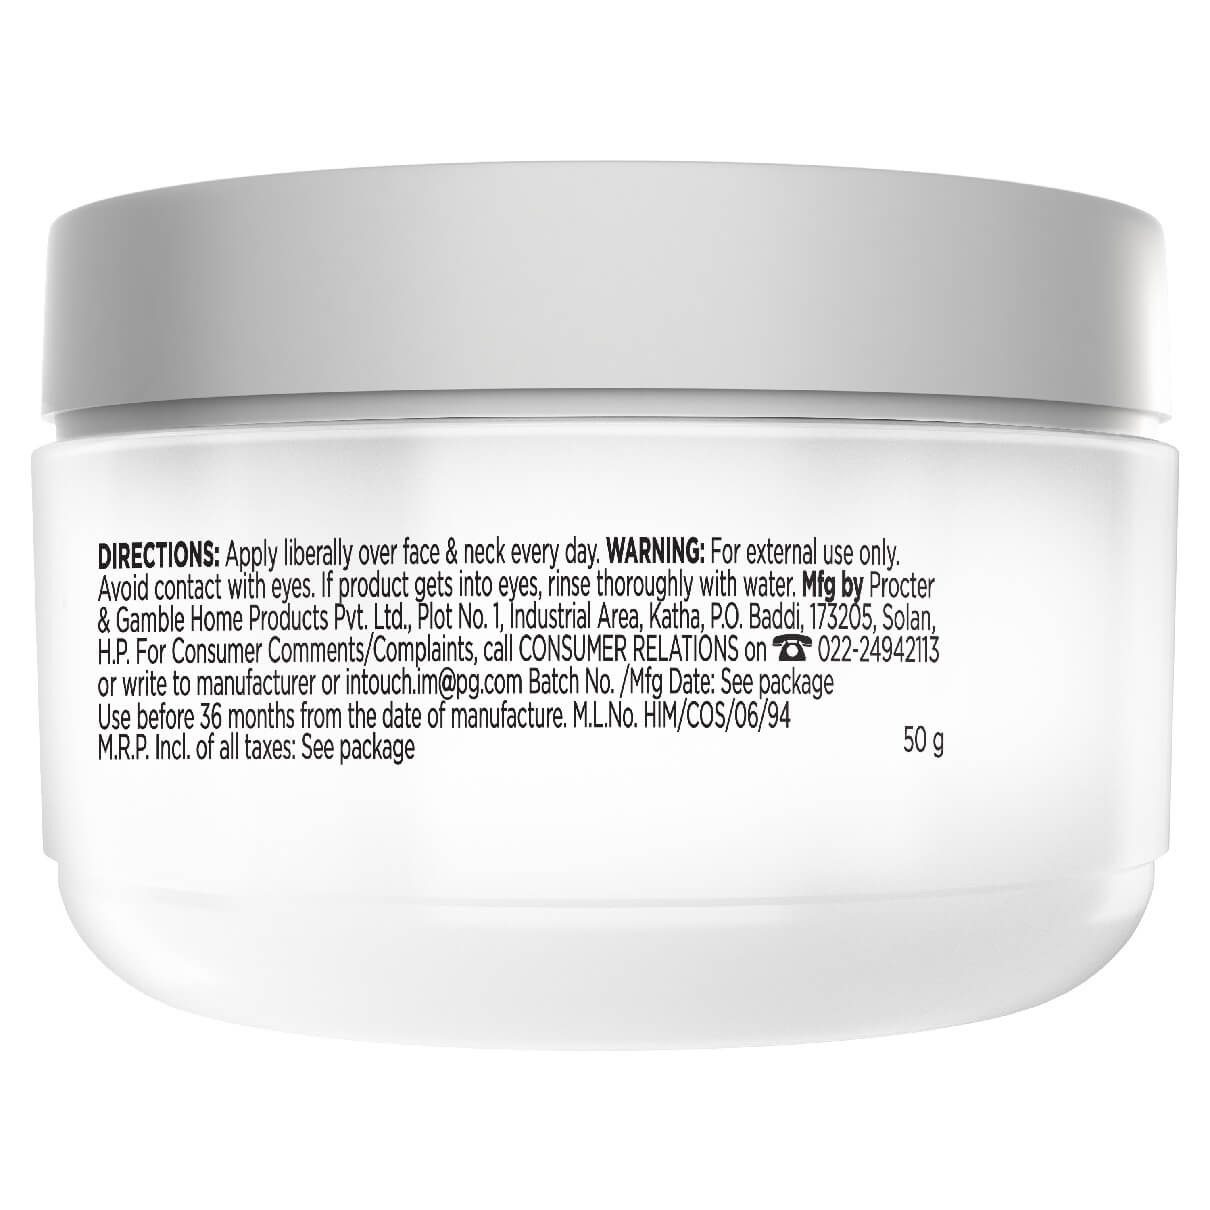 Natural White Day Cream image